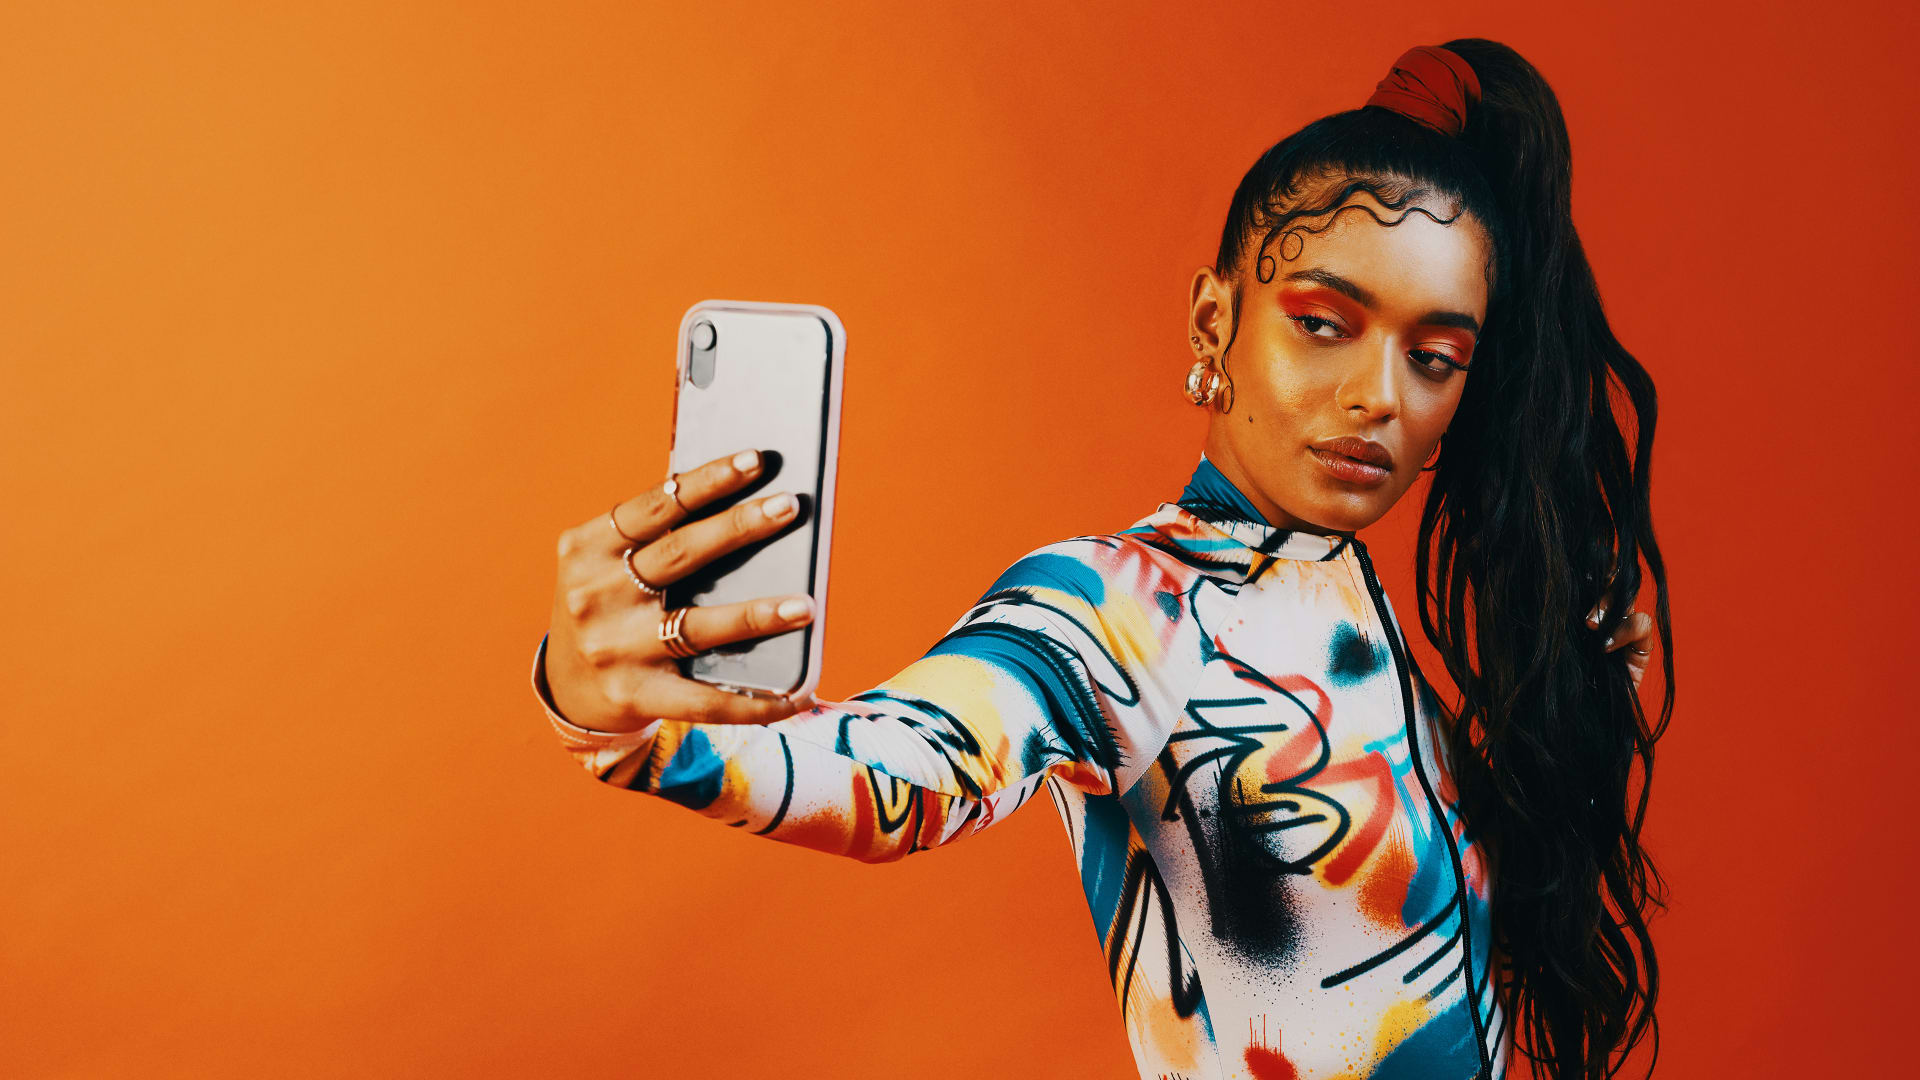 What makes a great mobile app in fashion